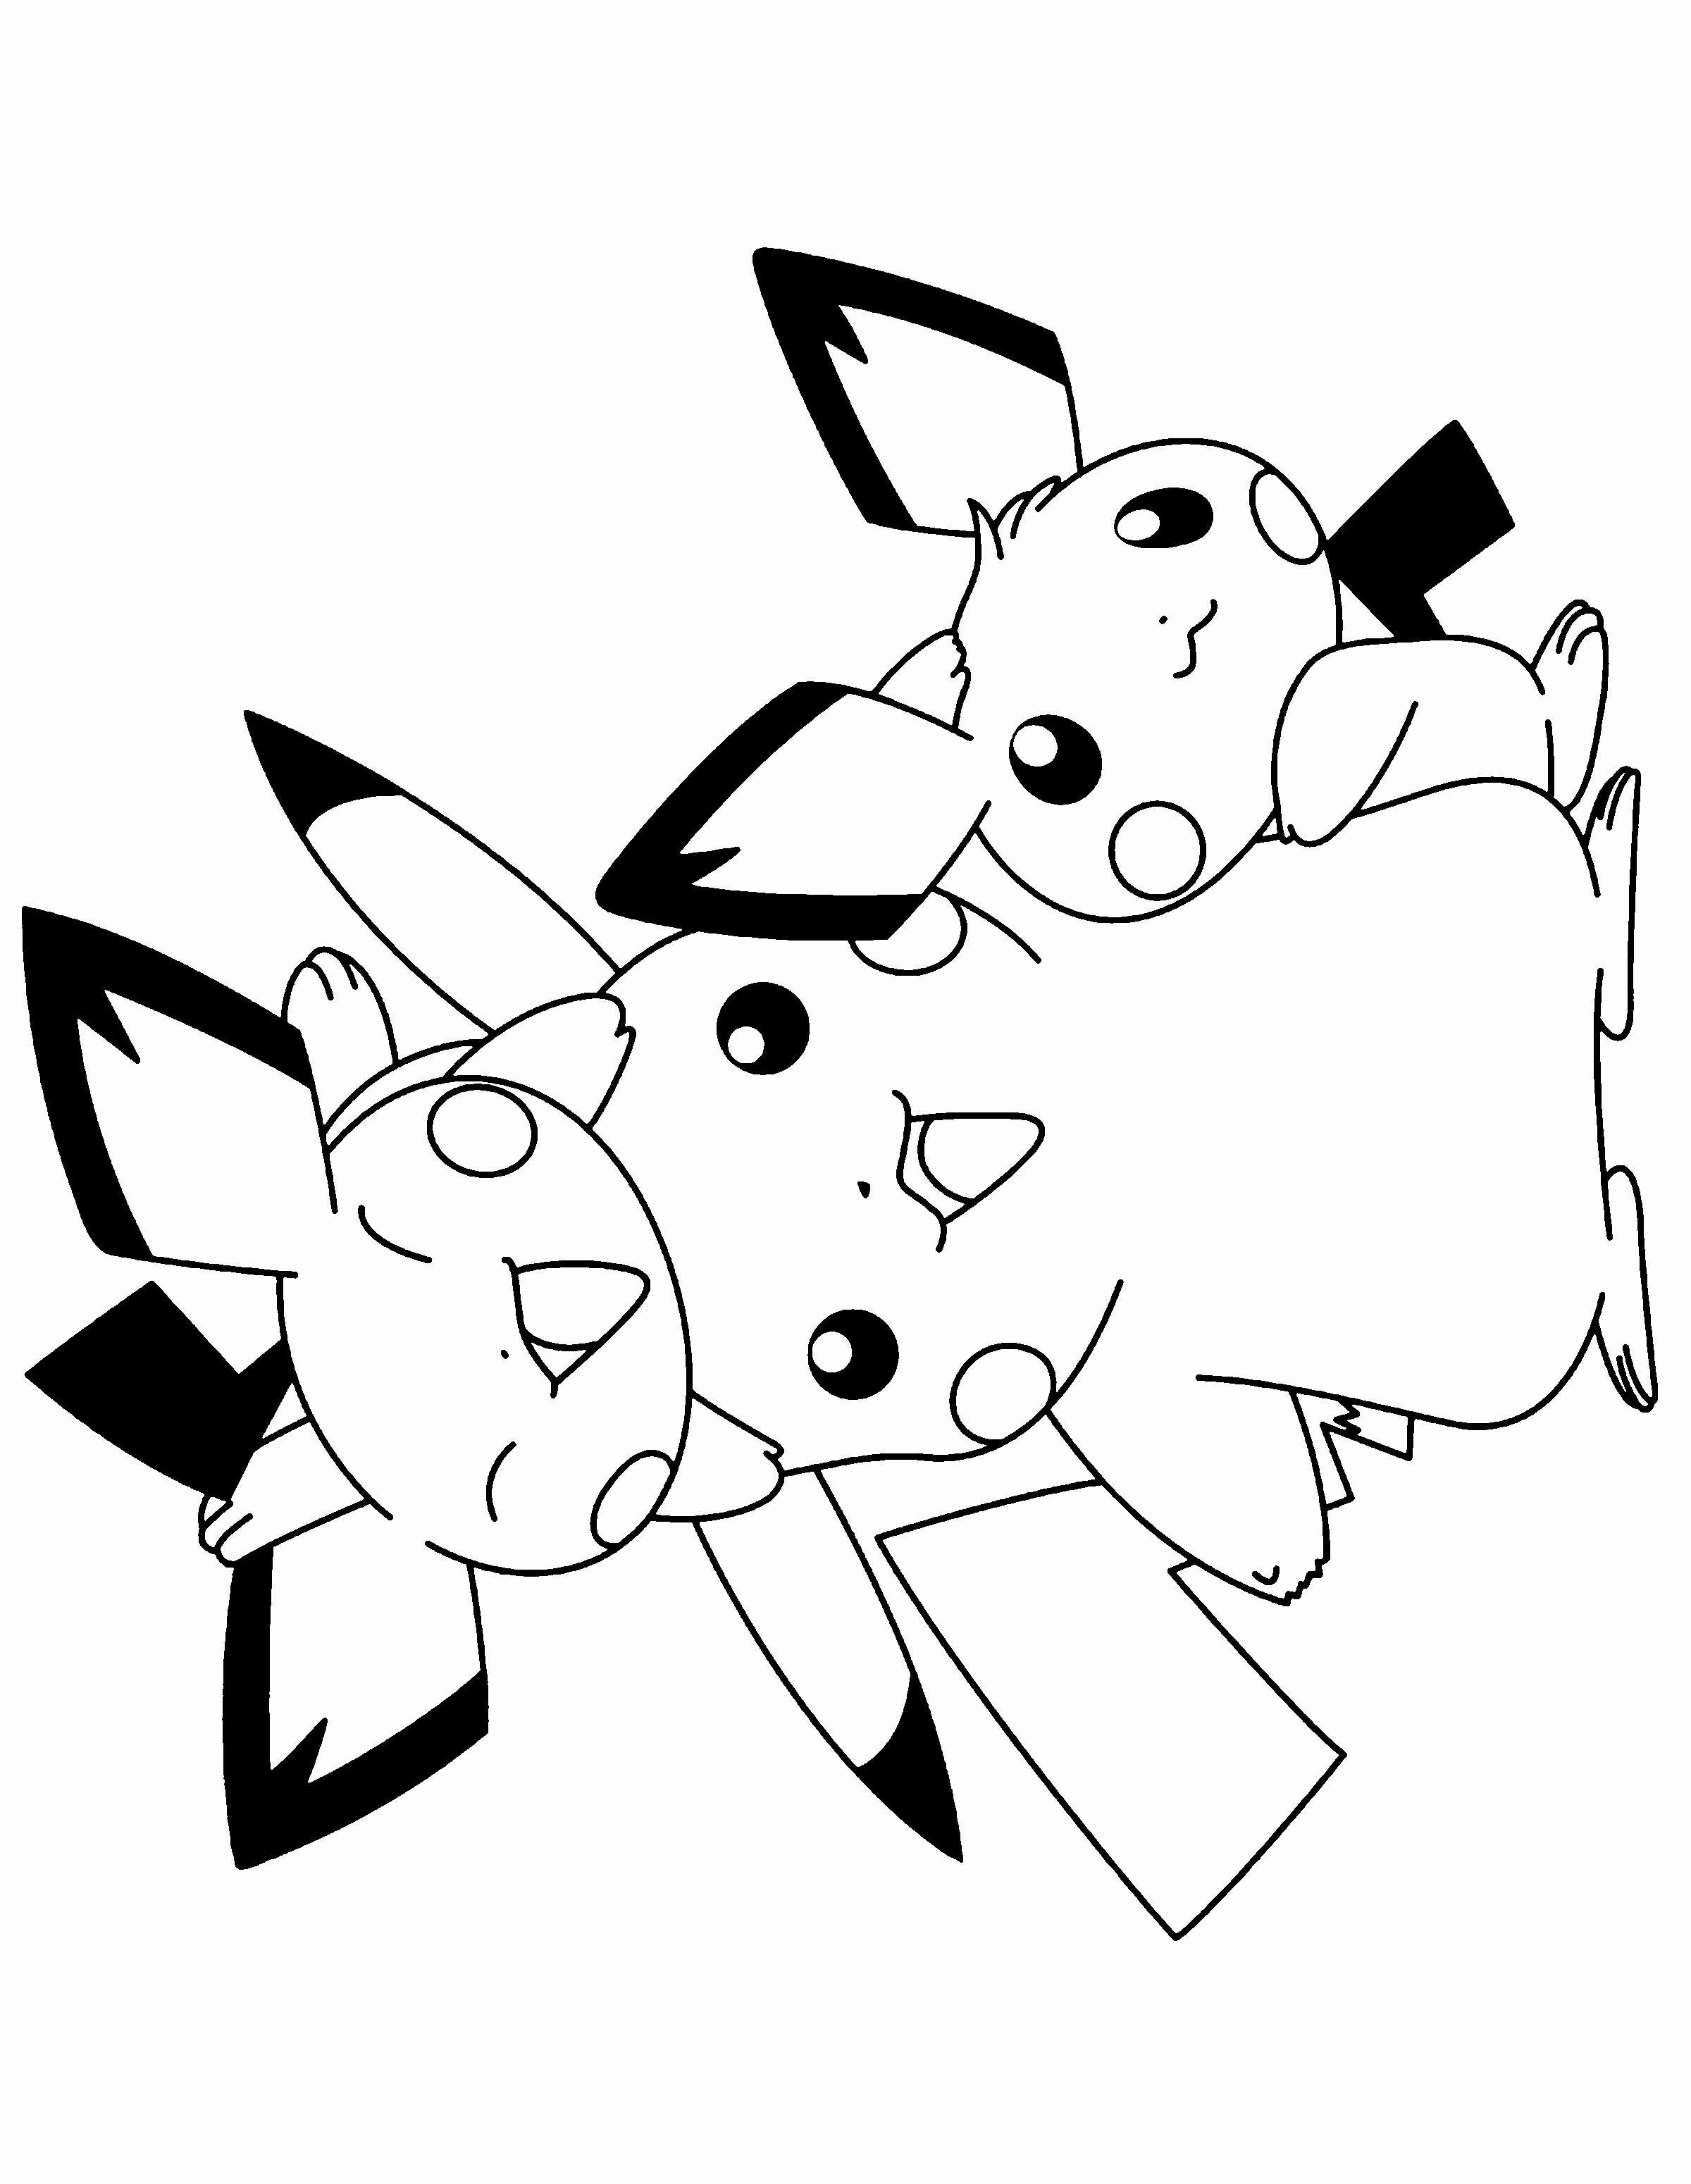 coloring page best of pikachu and pichu